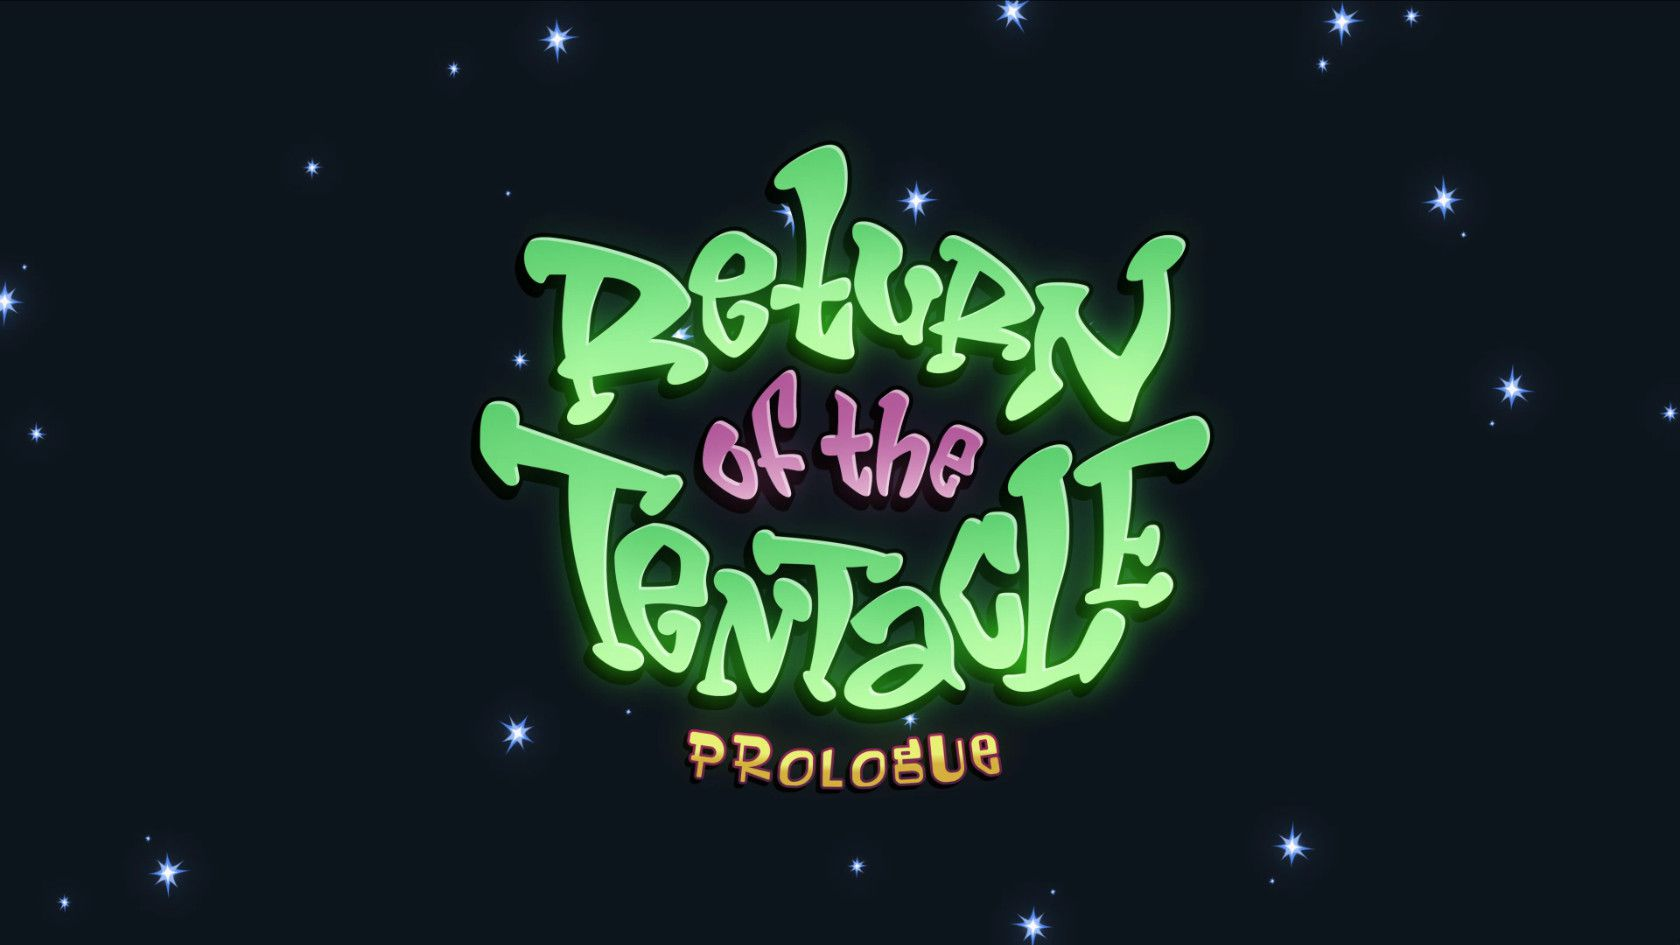 Return of the Tentacle: The Prologue